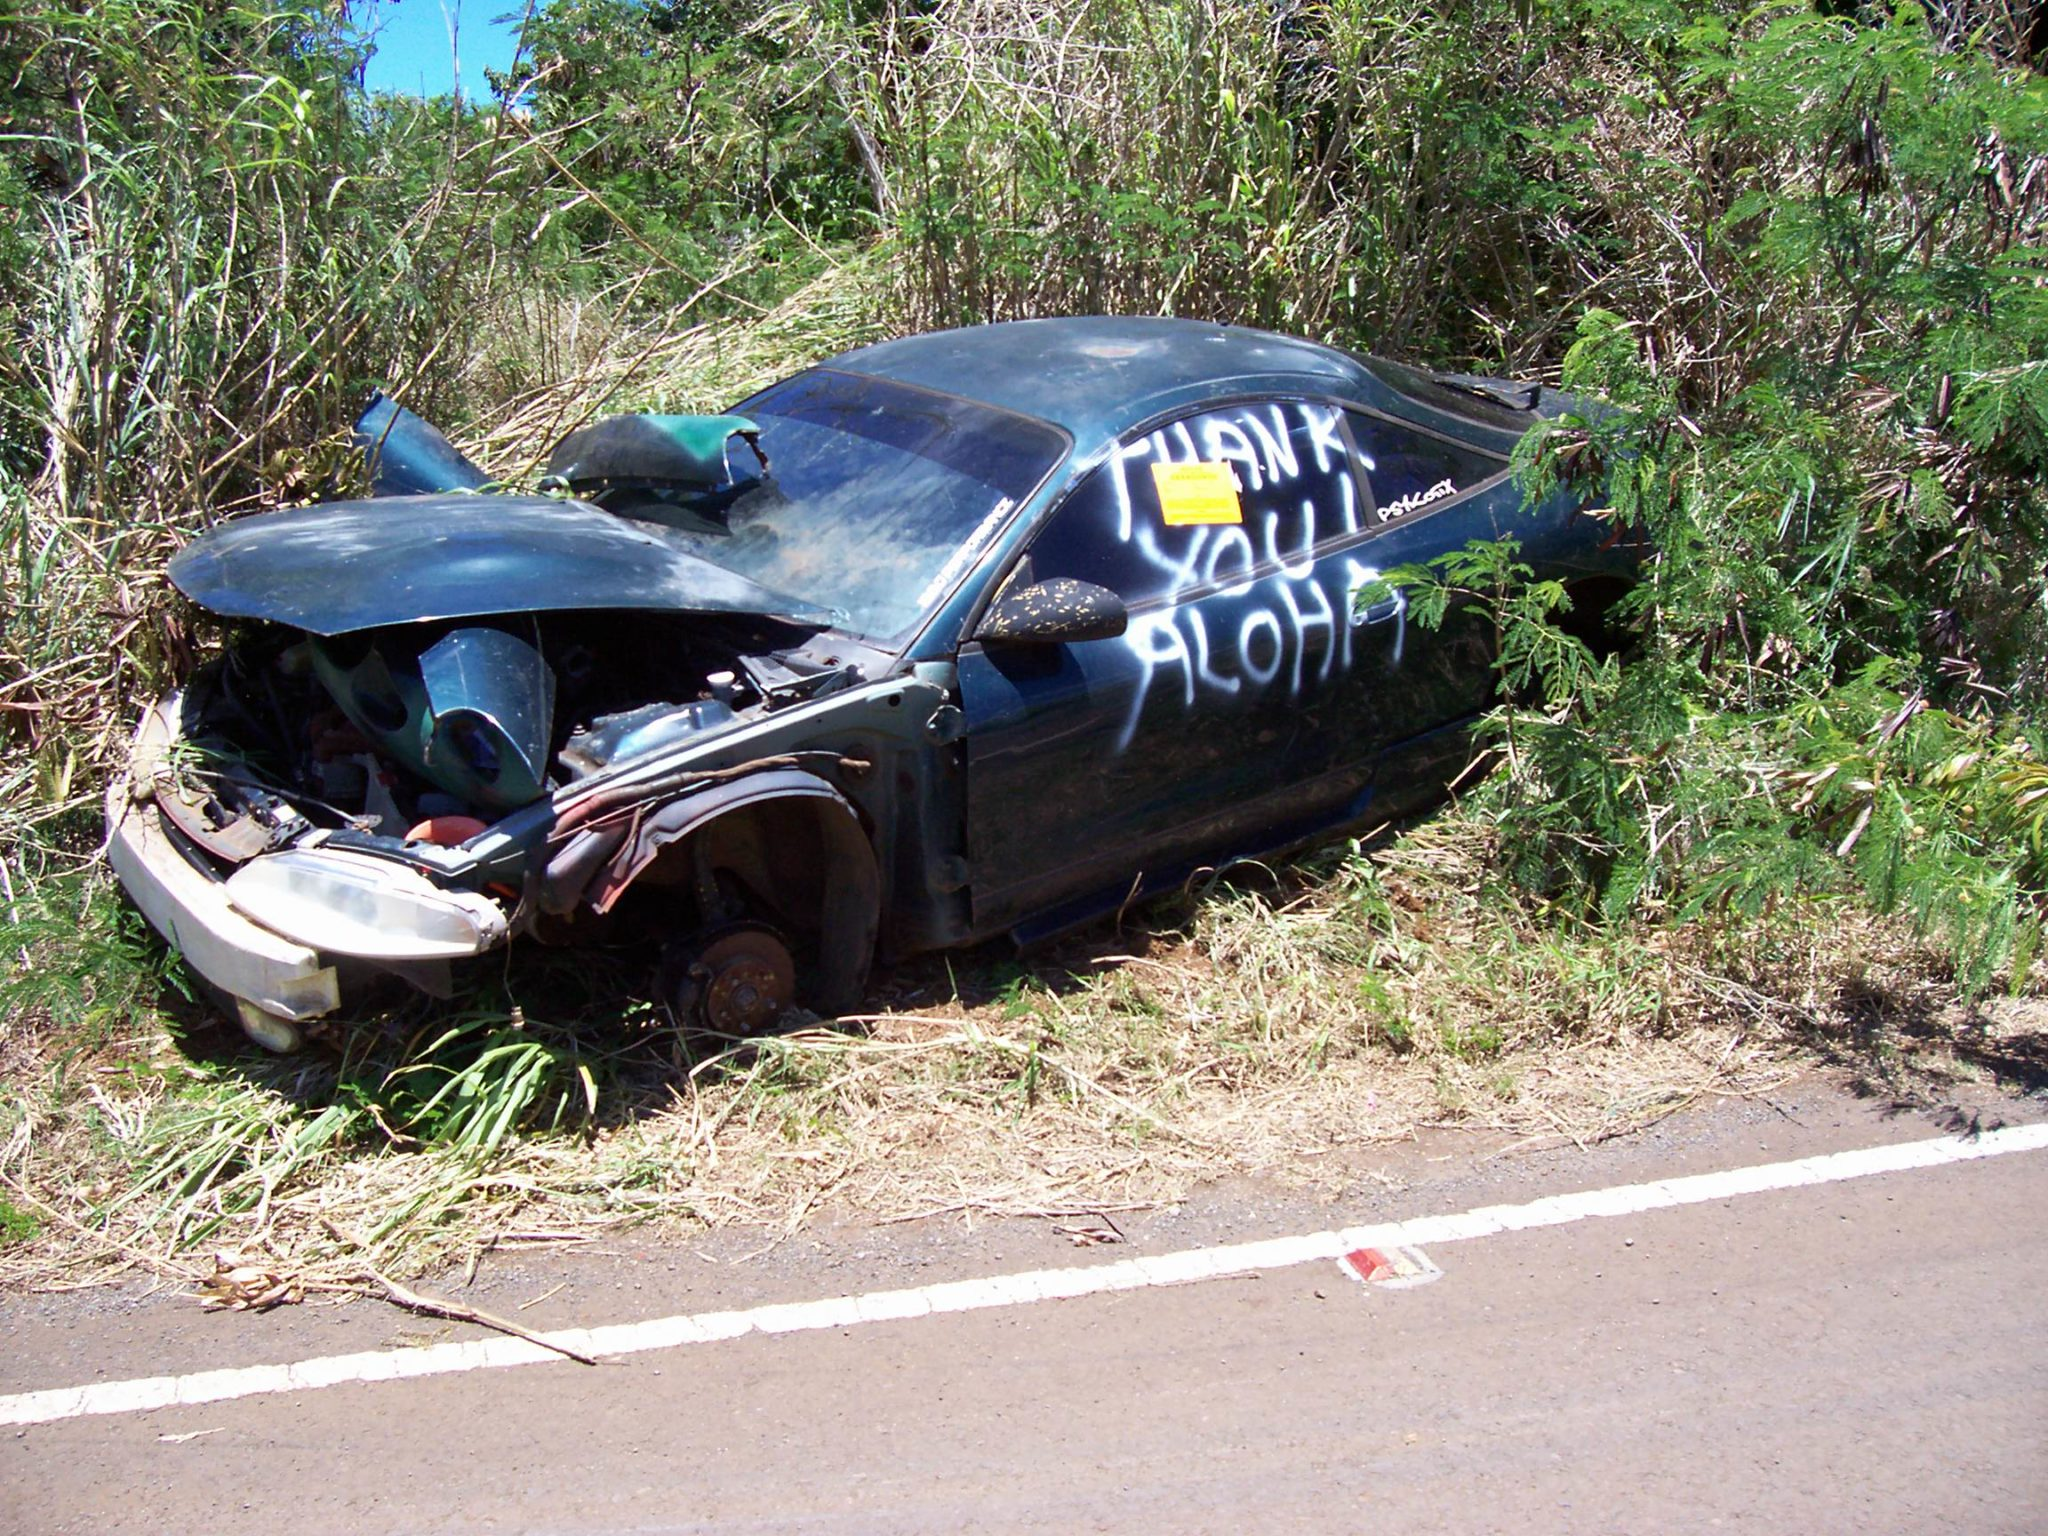 Tad Bartimus: The Hana Highway Has Become A Vehicle Dumping